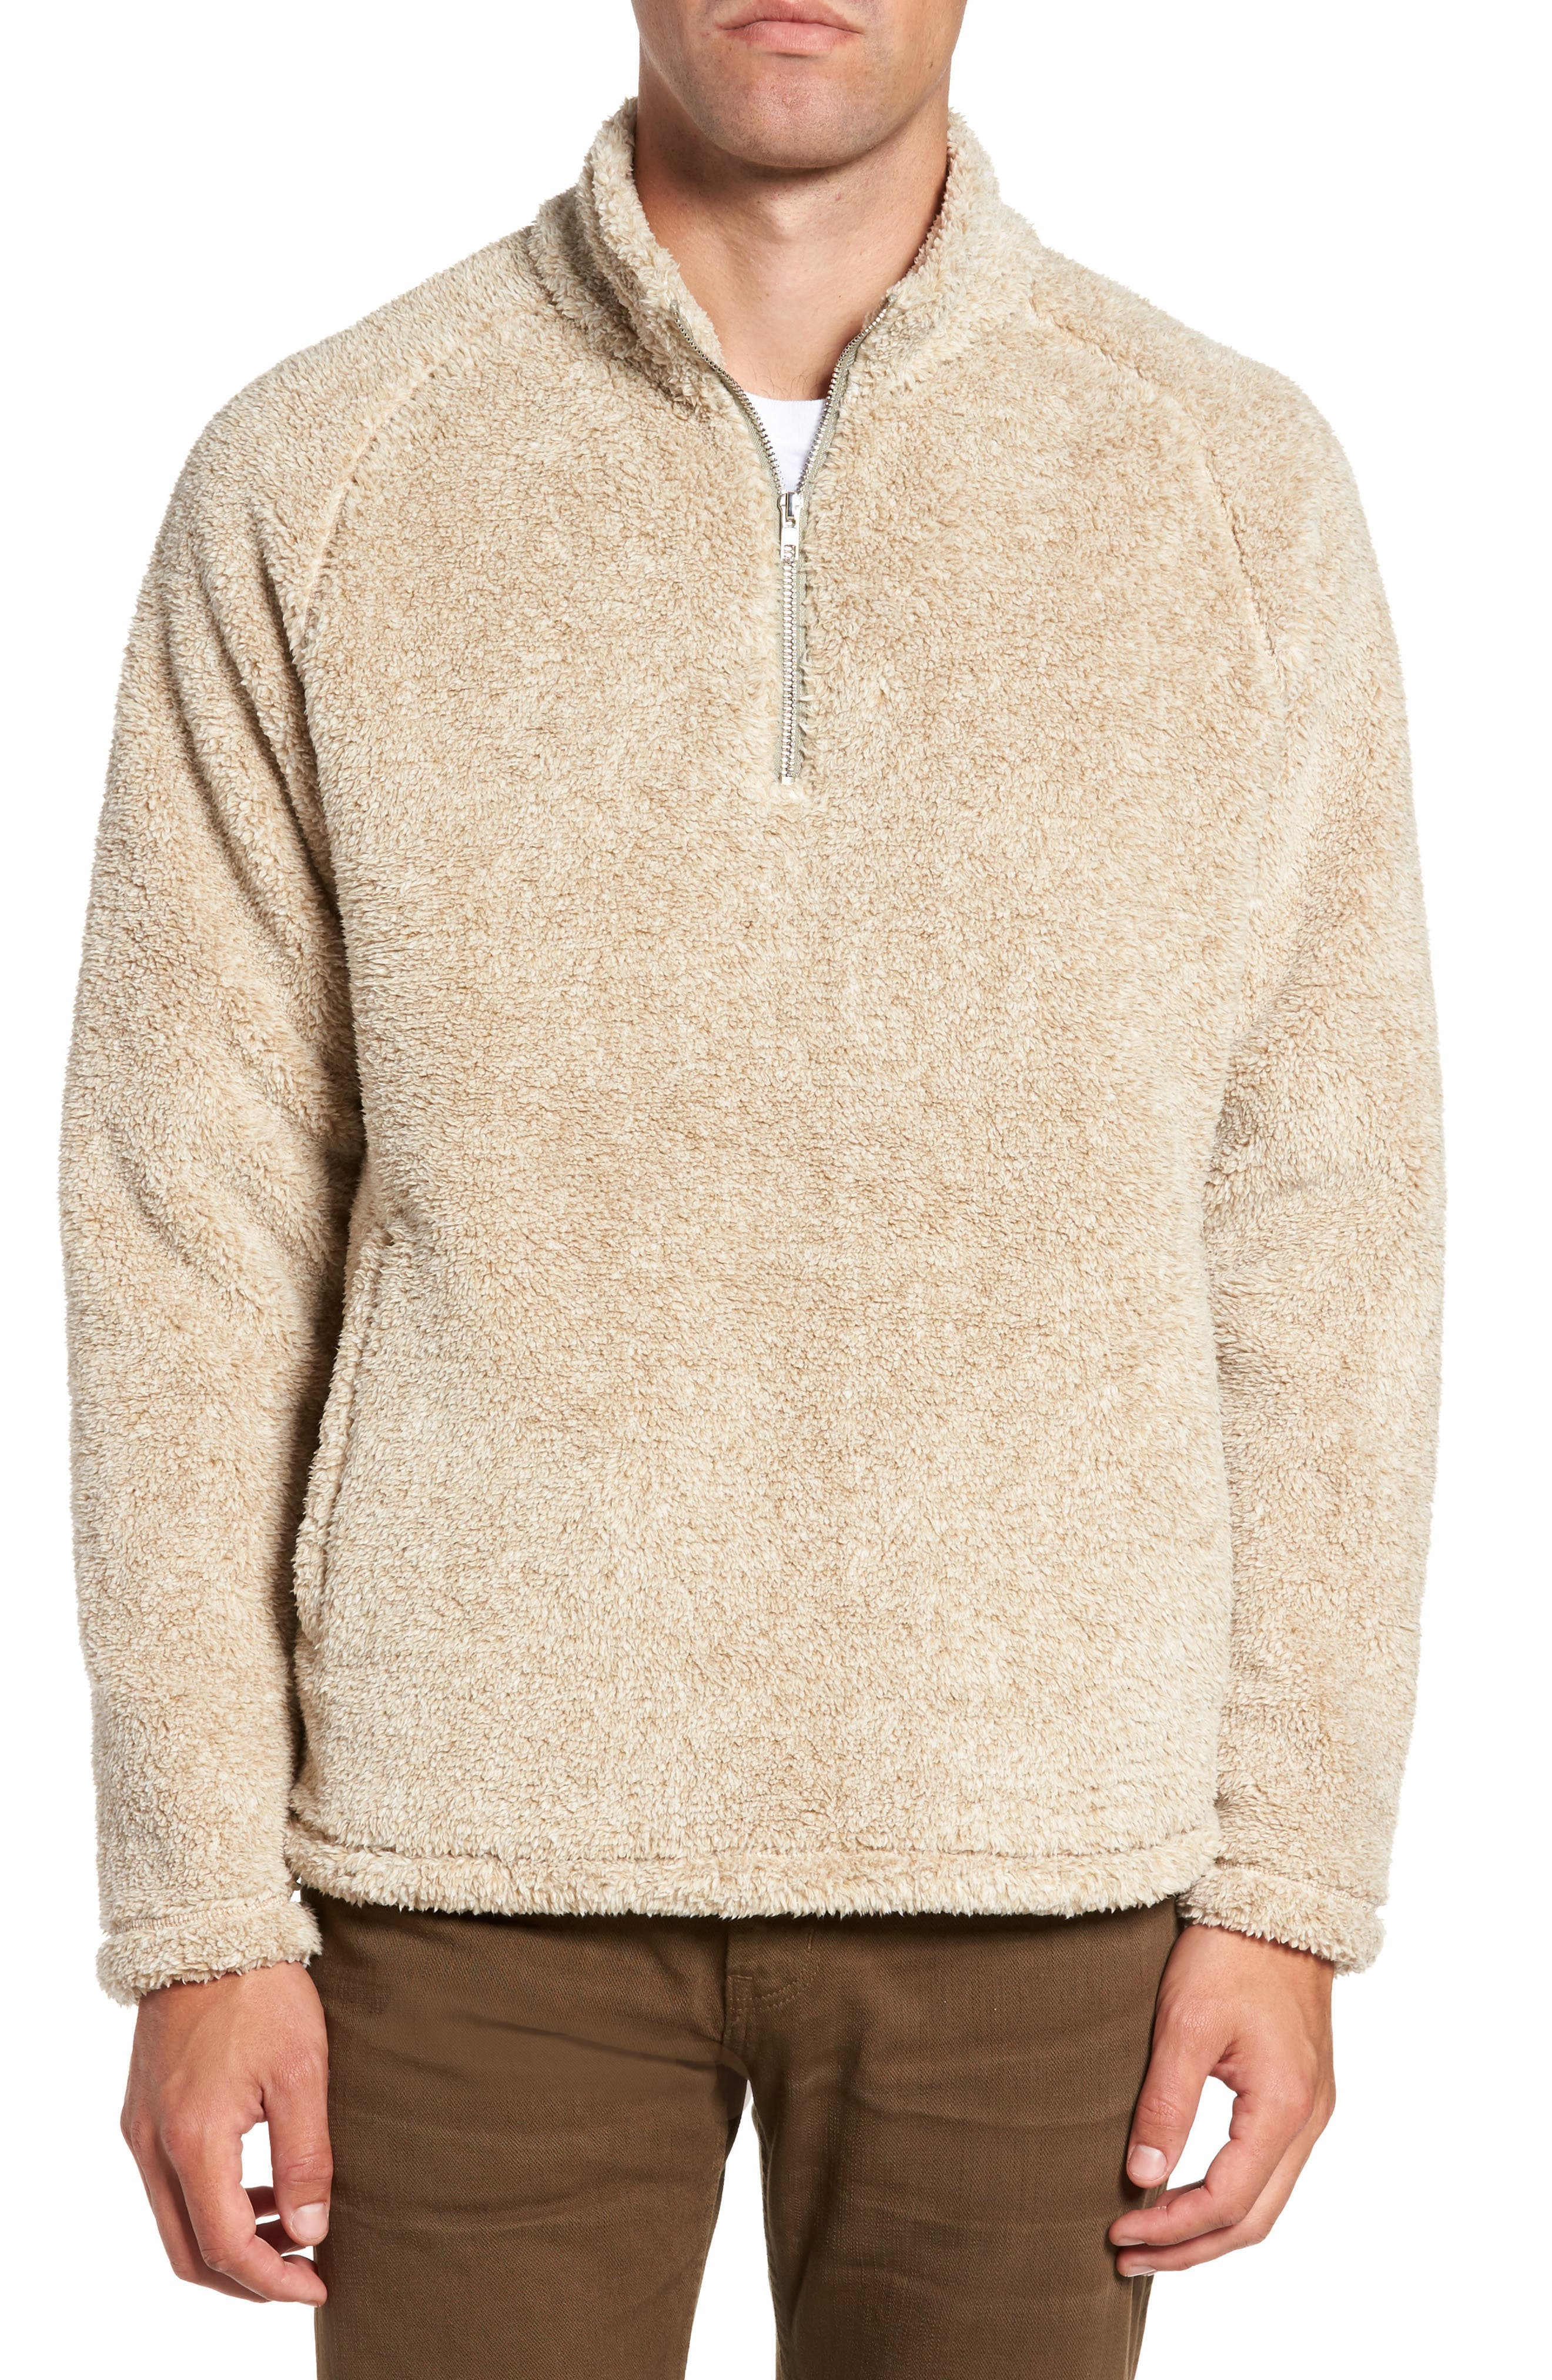 Nordstrom Men's Shop Polar Fleece Quarter Zip Pullover